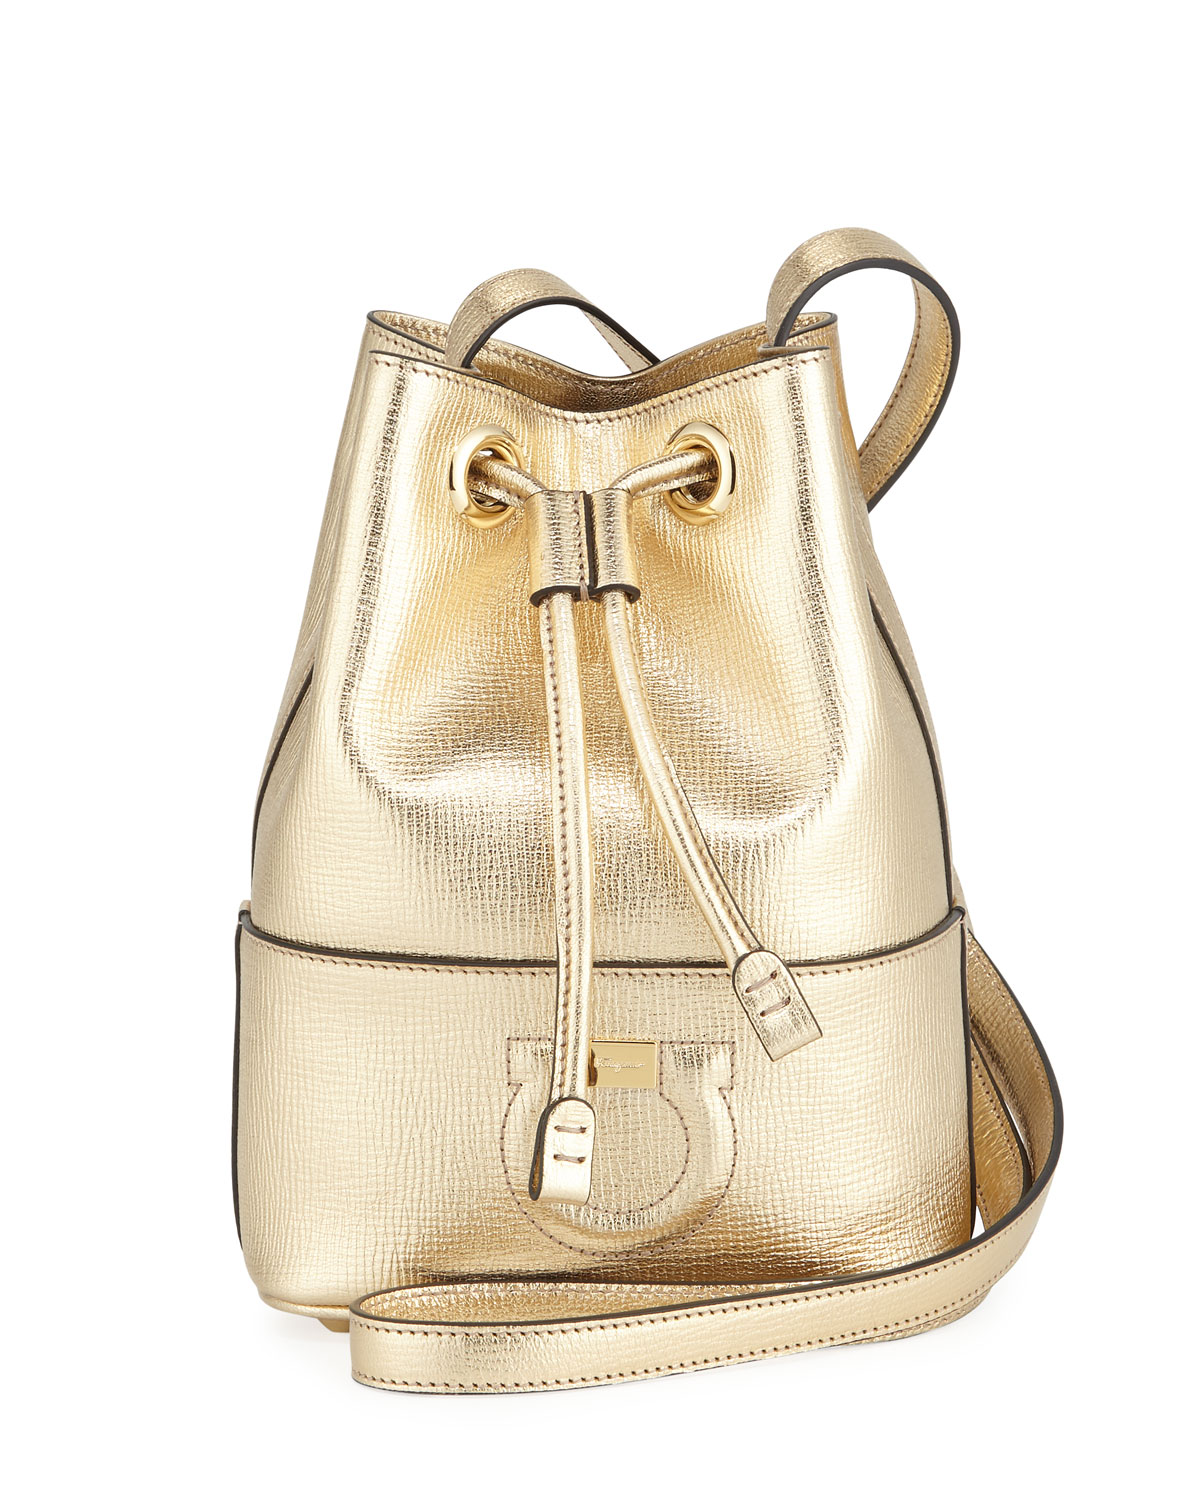 8a7b78d968 Salvatore Ferragamo Gancio City Metallic Leather Bucket Bag